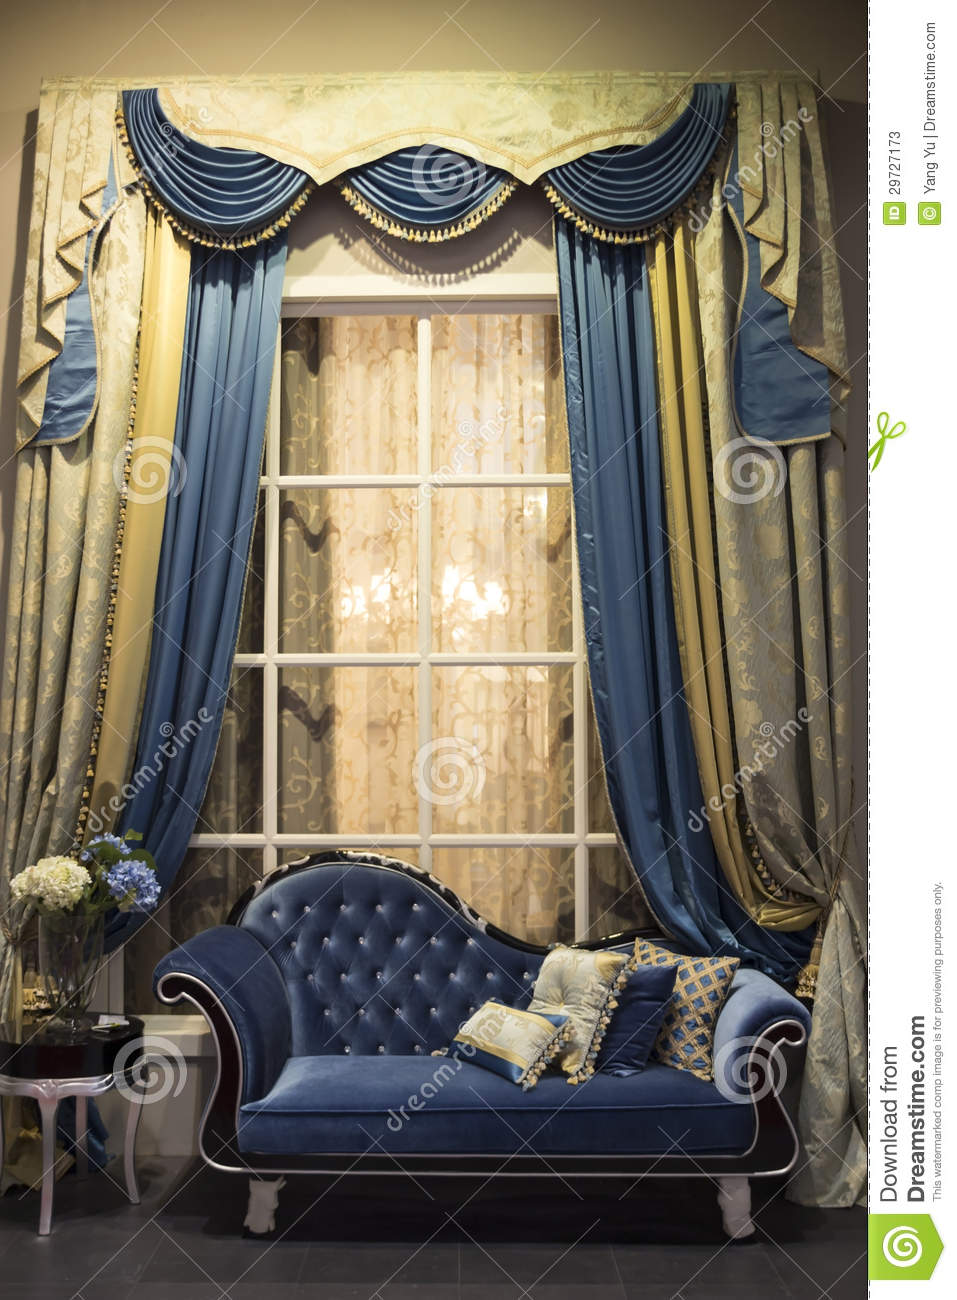 Interior With Sofa And Curtains Stock Image Image Of